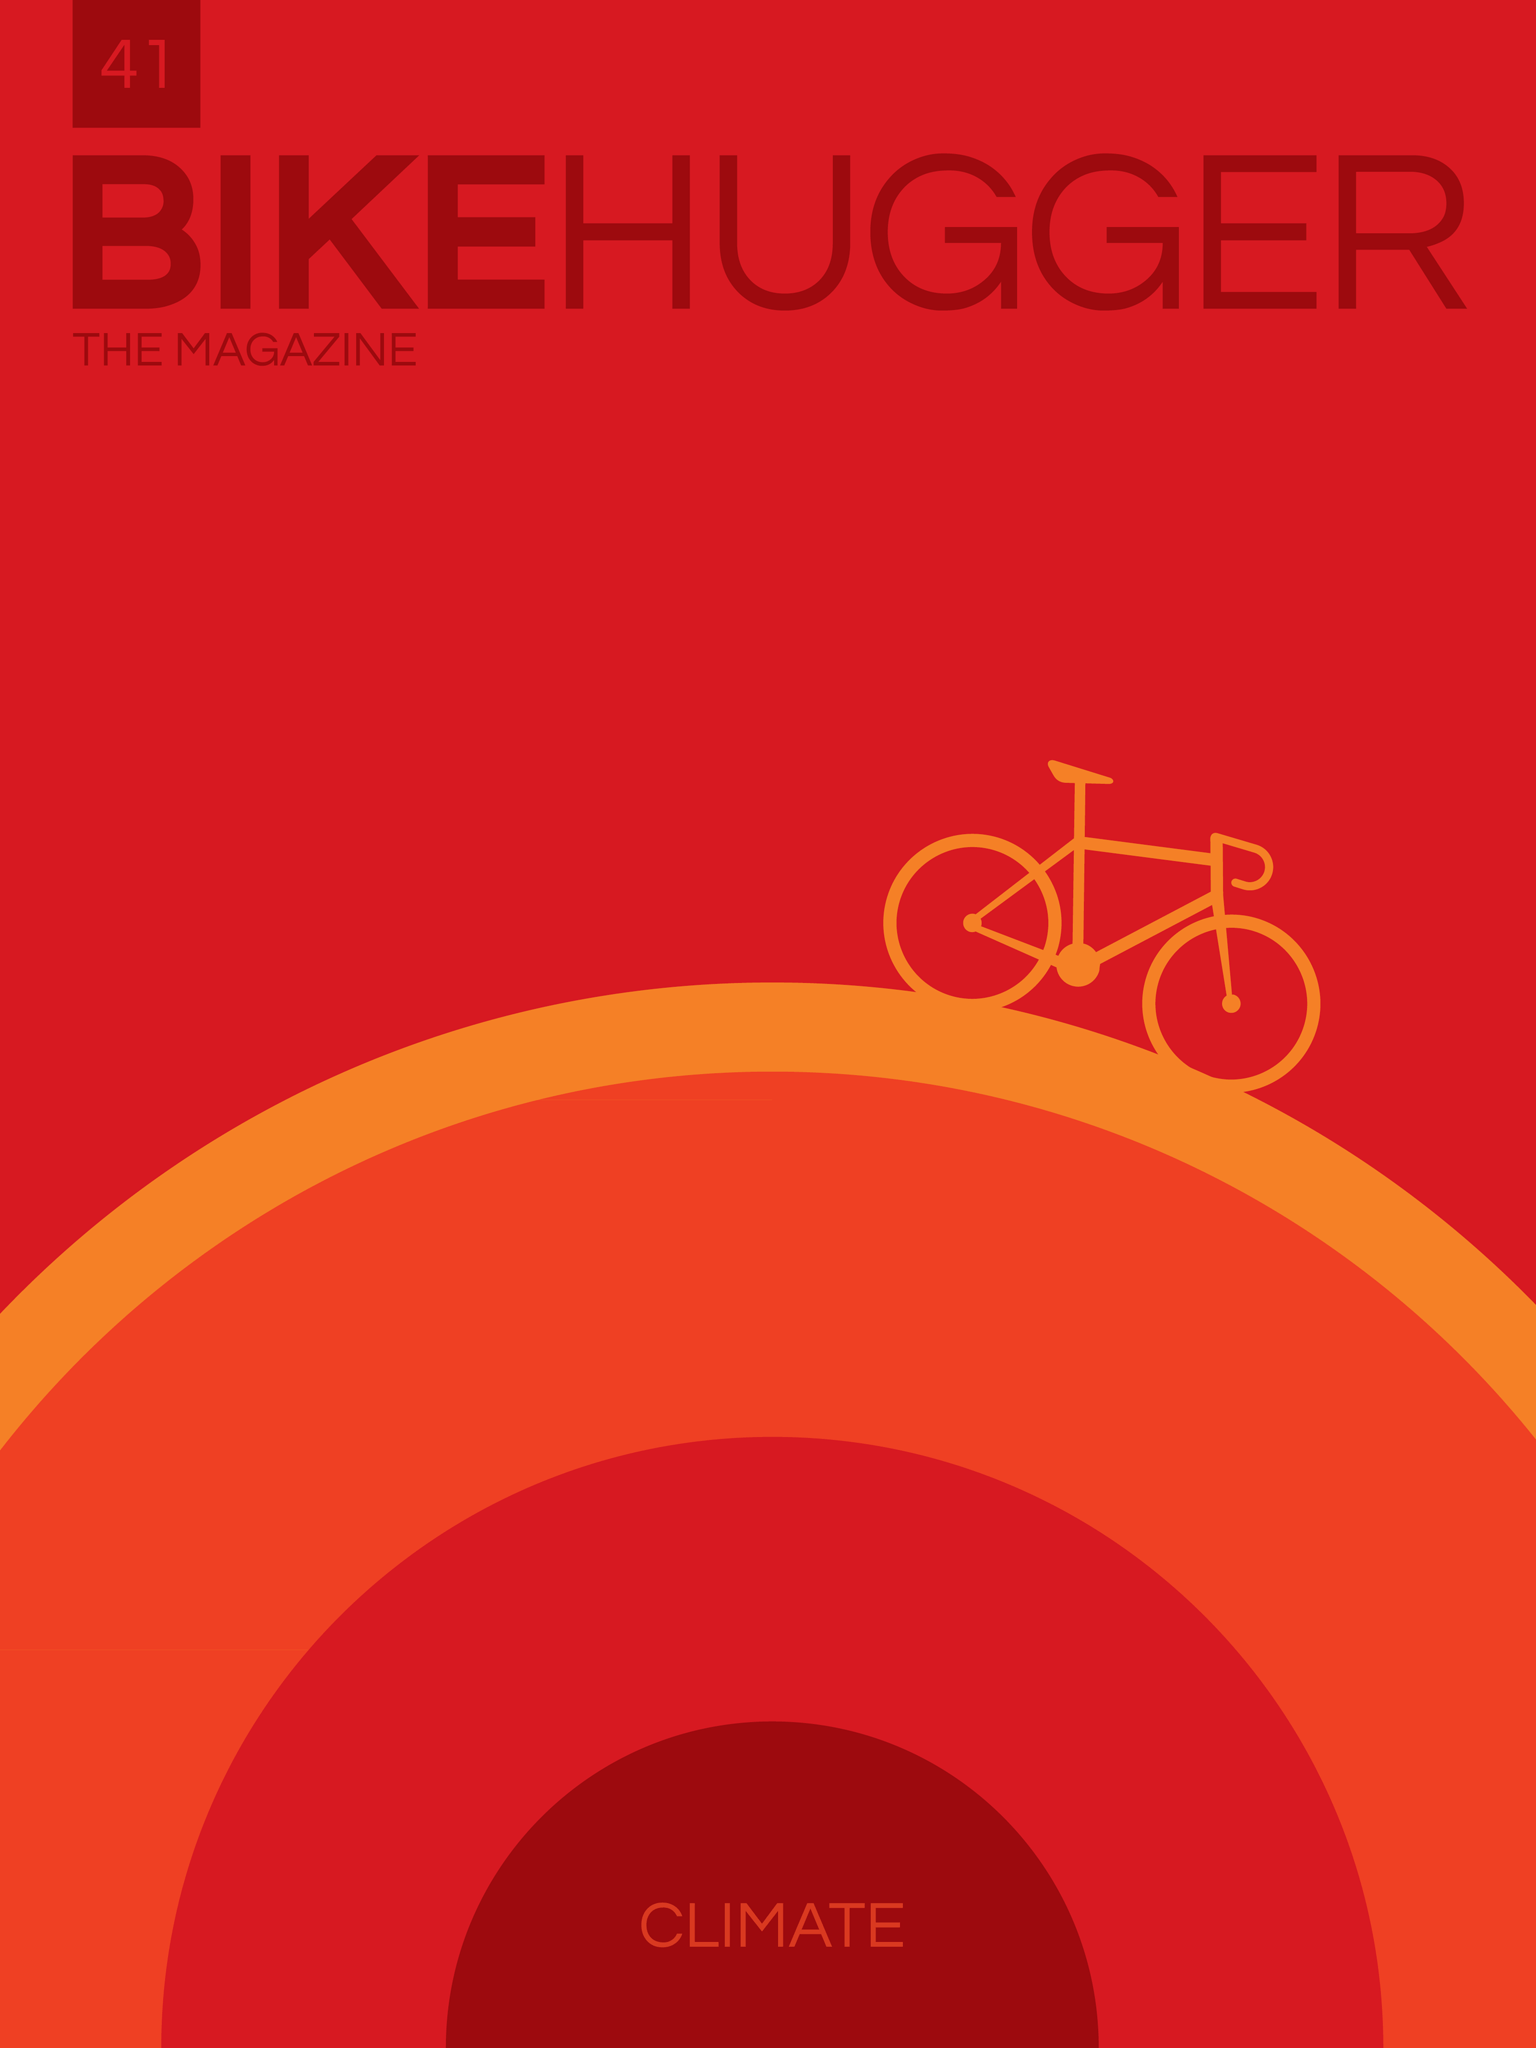 bike-hugger-41-cover-portrait-01